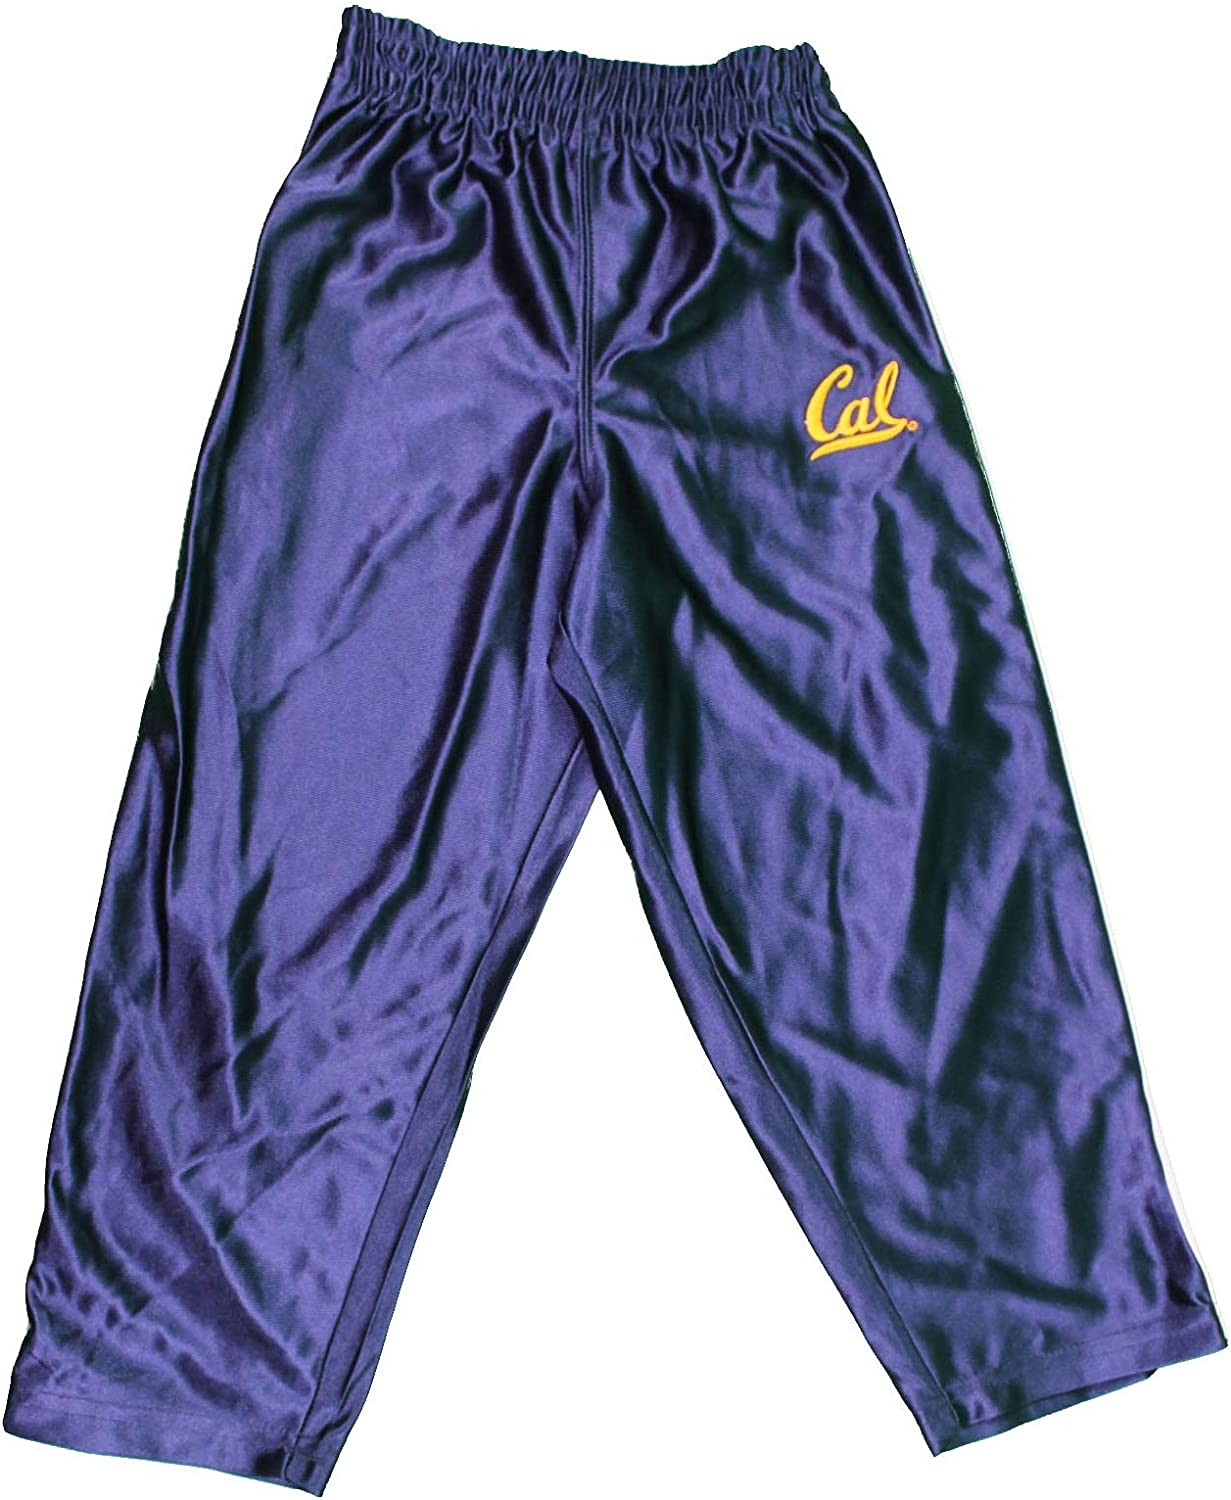 NCAA University of California Berkeley Crew Neck Long Sleeve Track Suit